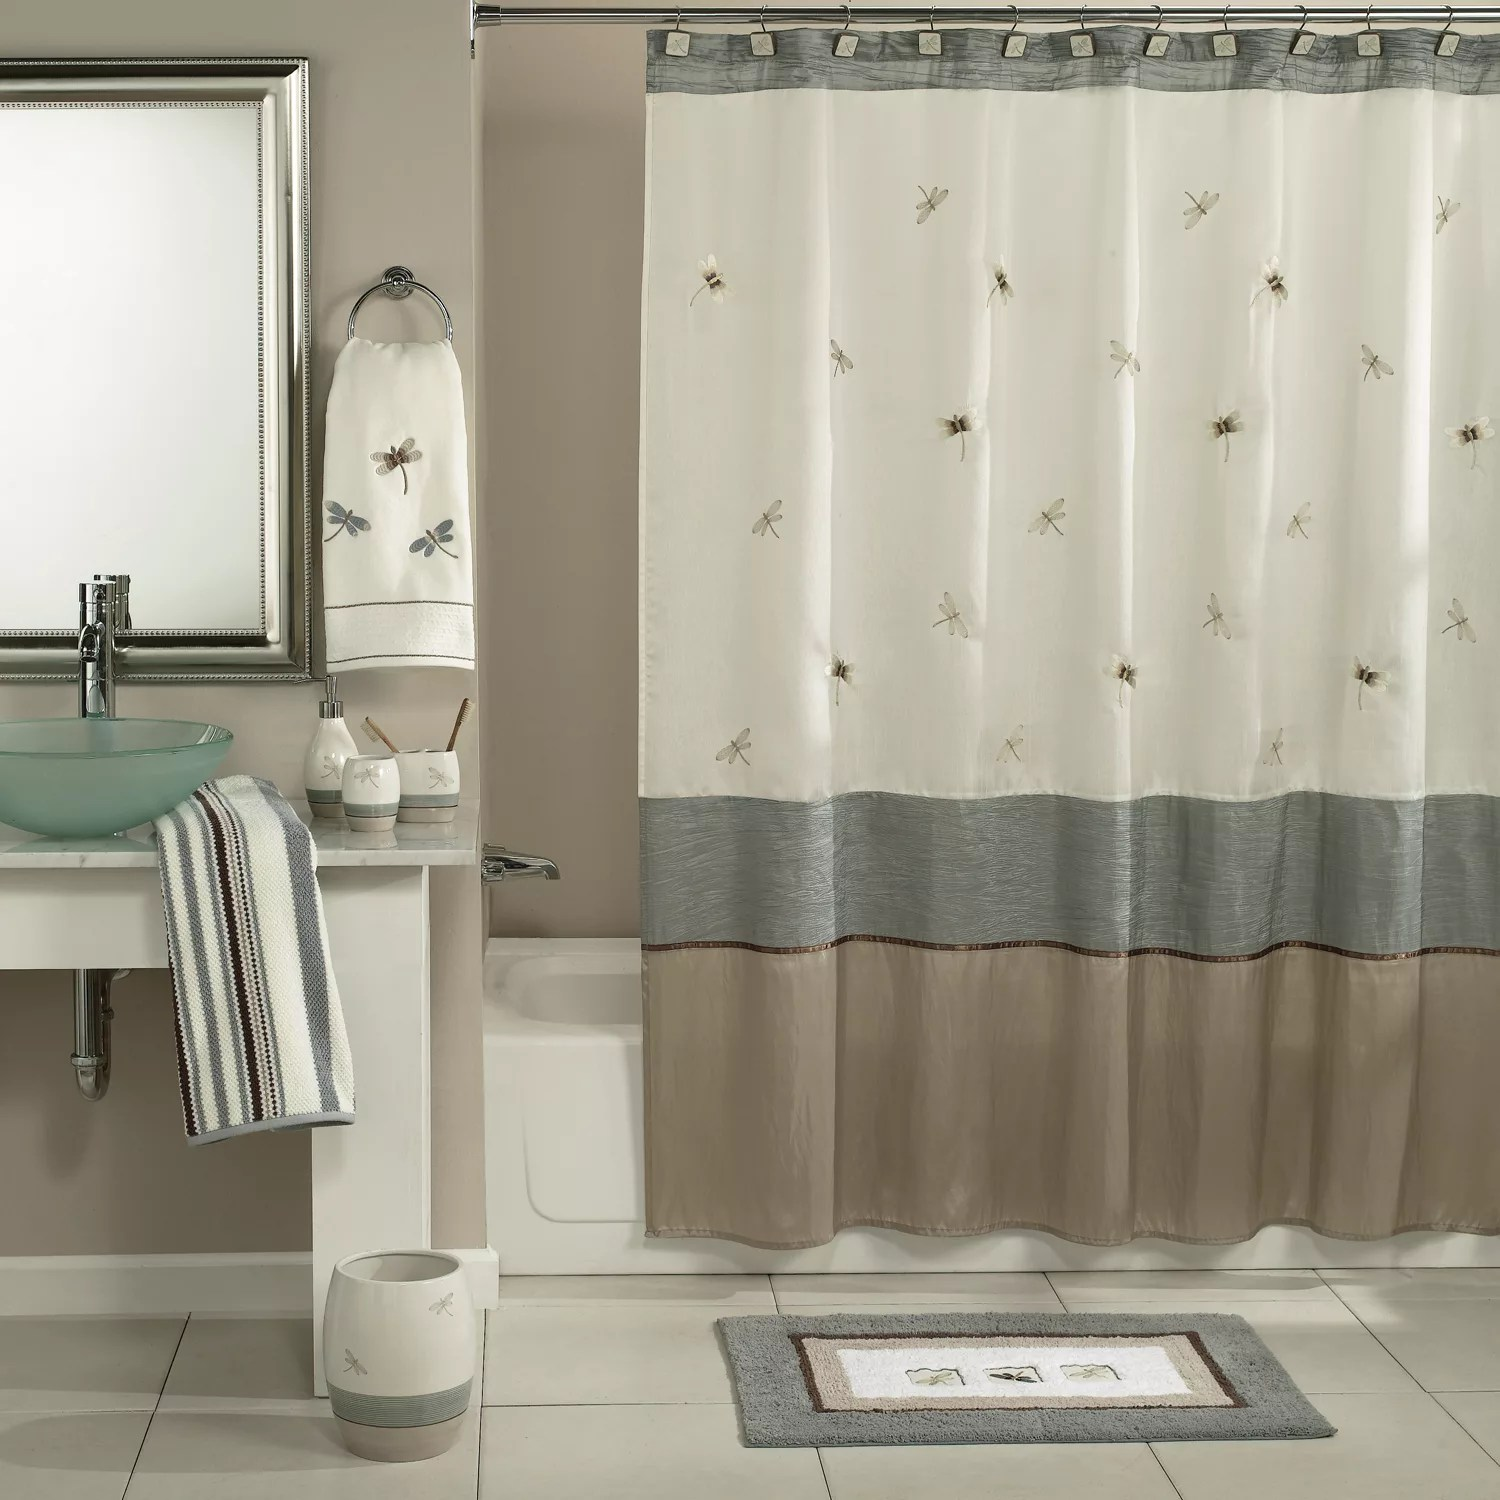 Shower Curtains Shower Curtains & Accessories Bathroom Bed